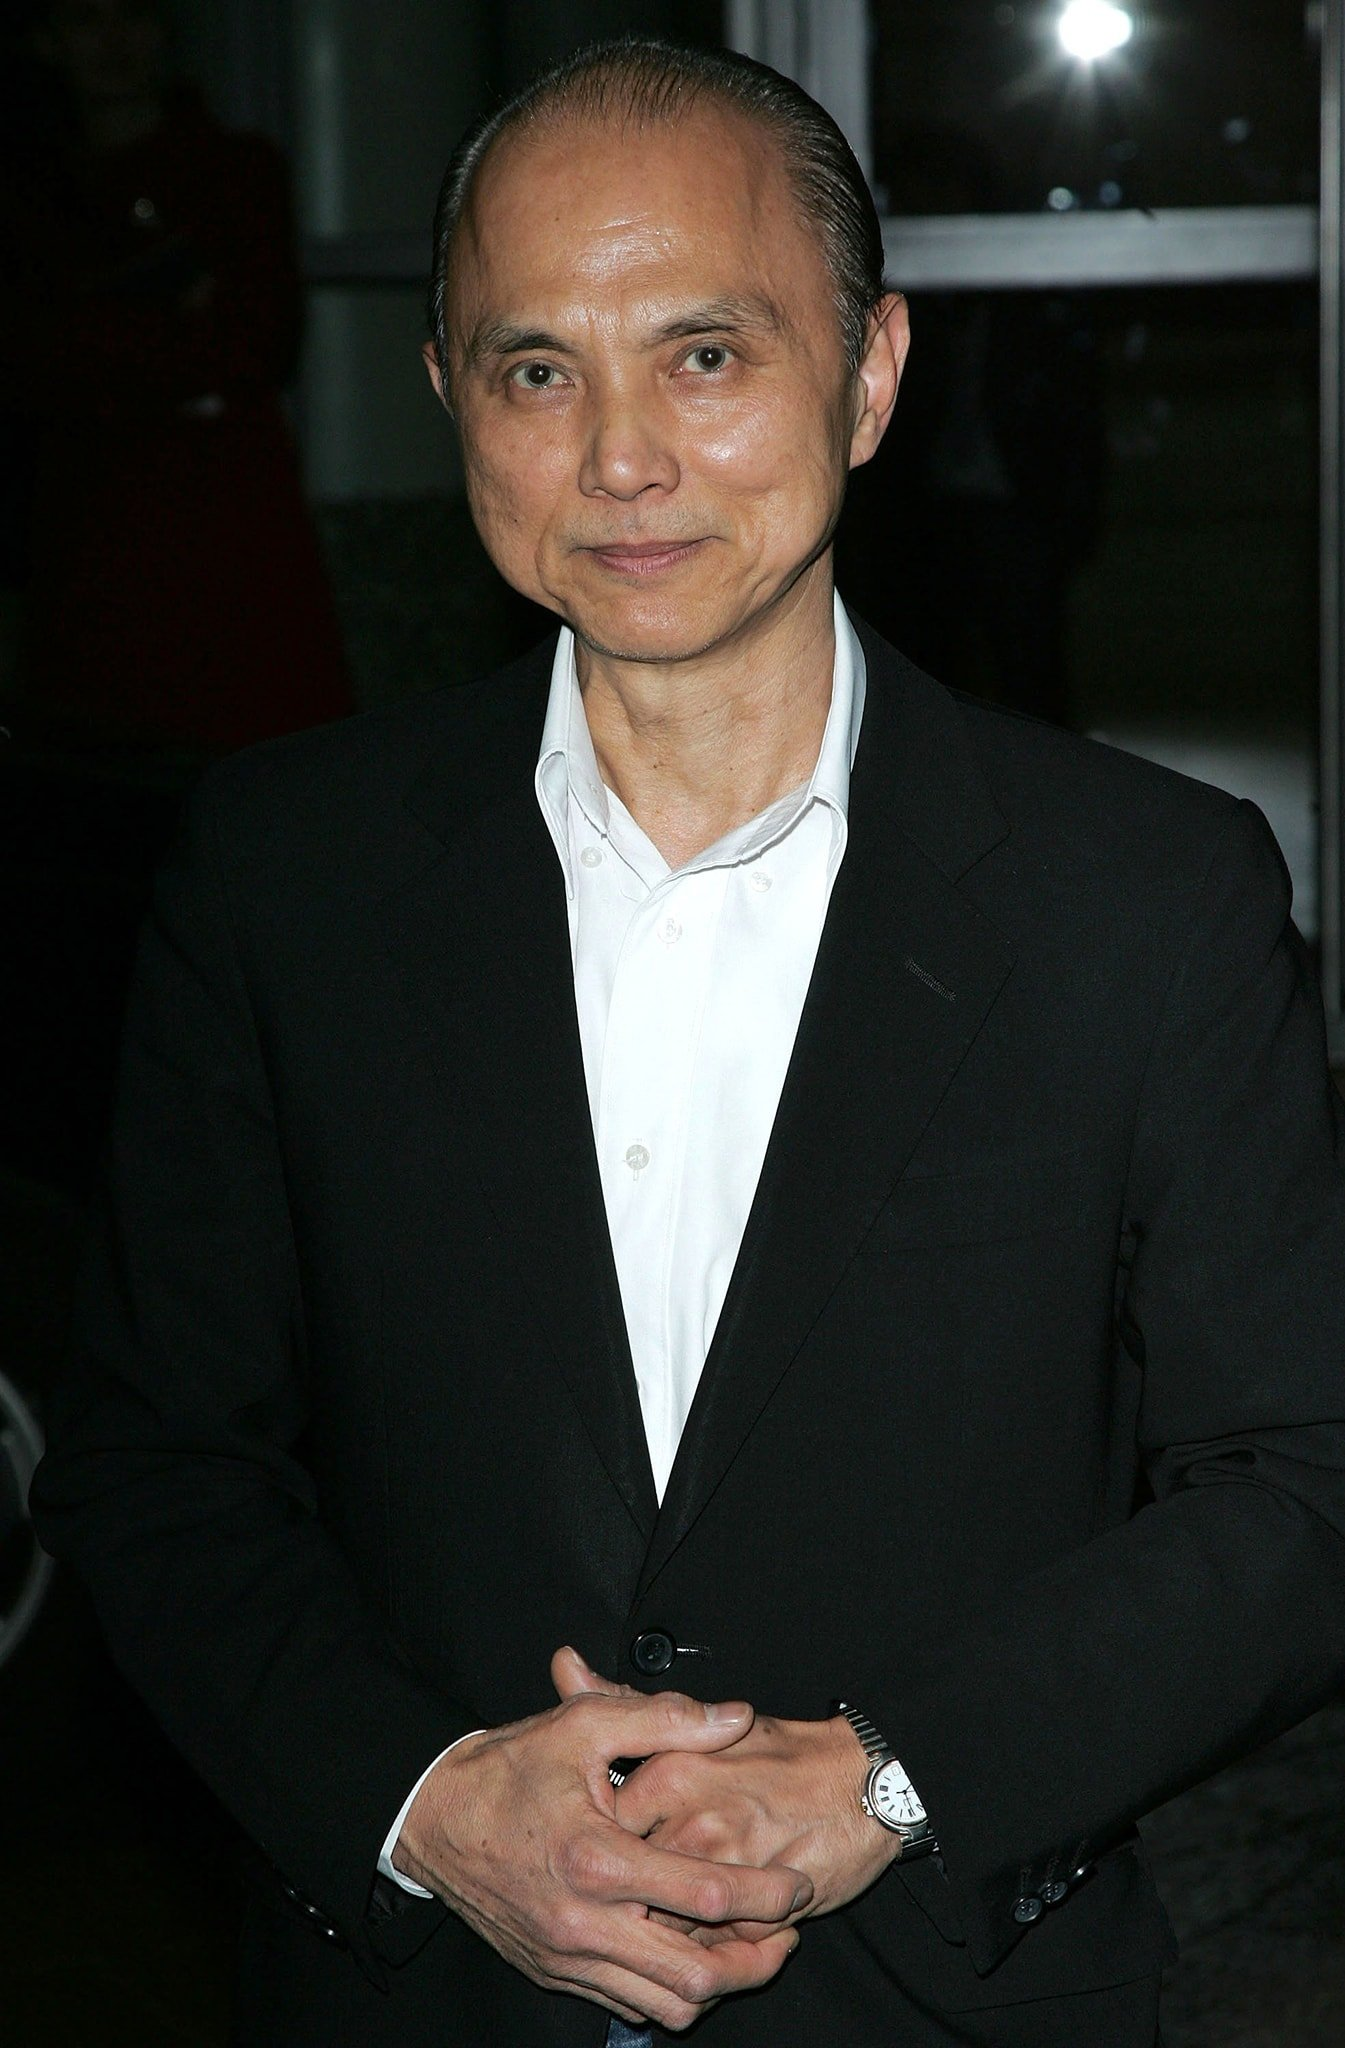 Malaysian-Chinese shoe designer Jimmy Choo, pictured in 2008, founded his eponymous footwear label in 1996